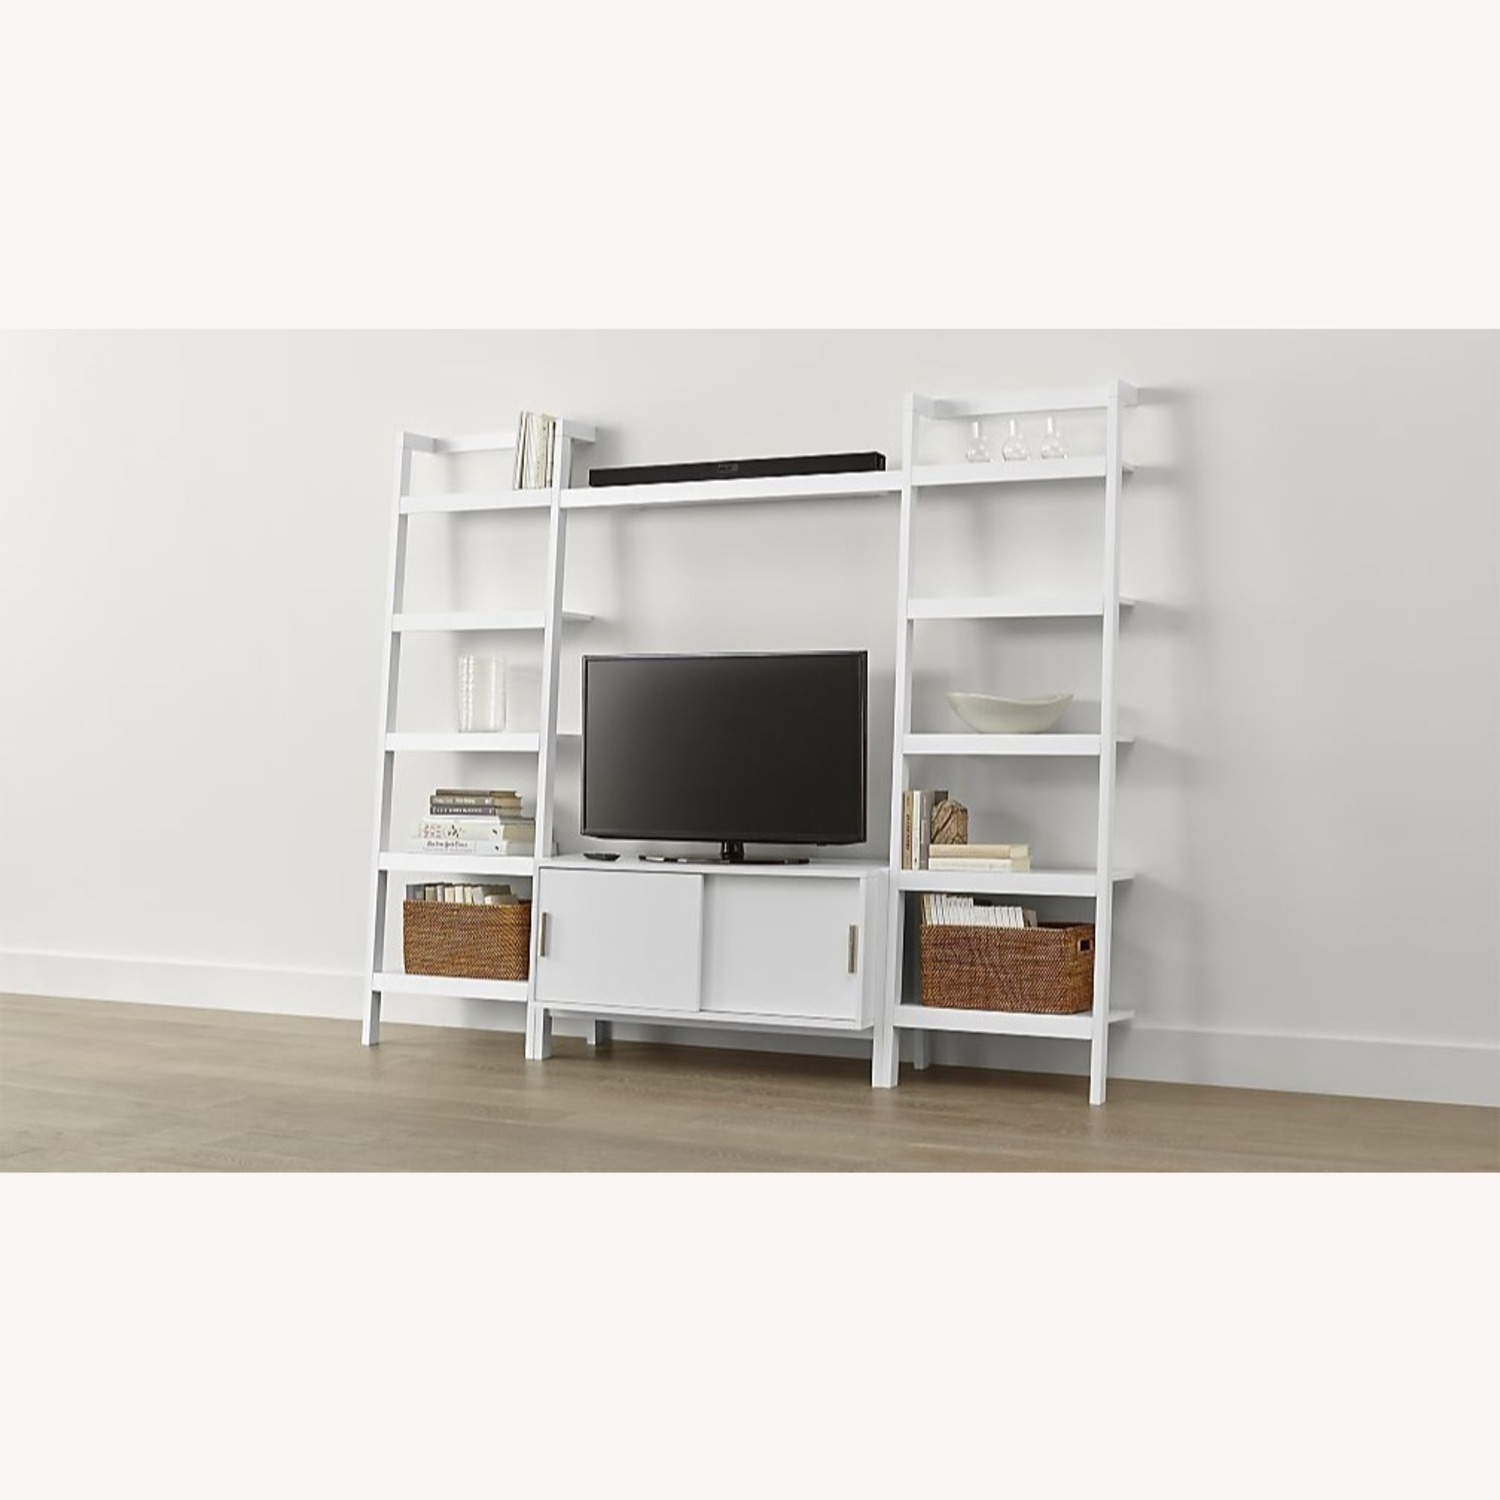 Crate and Barrel Sawyer Media Center - image-1